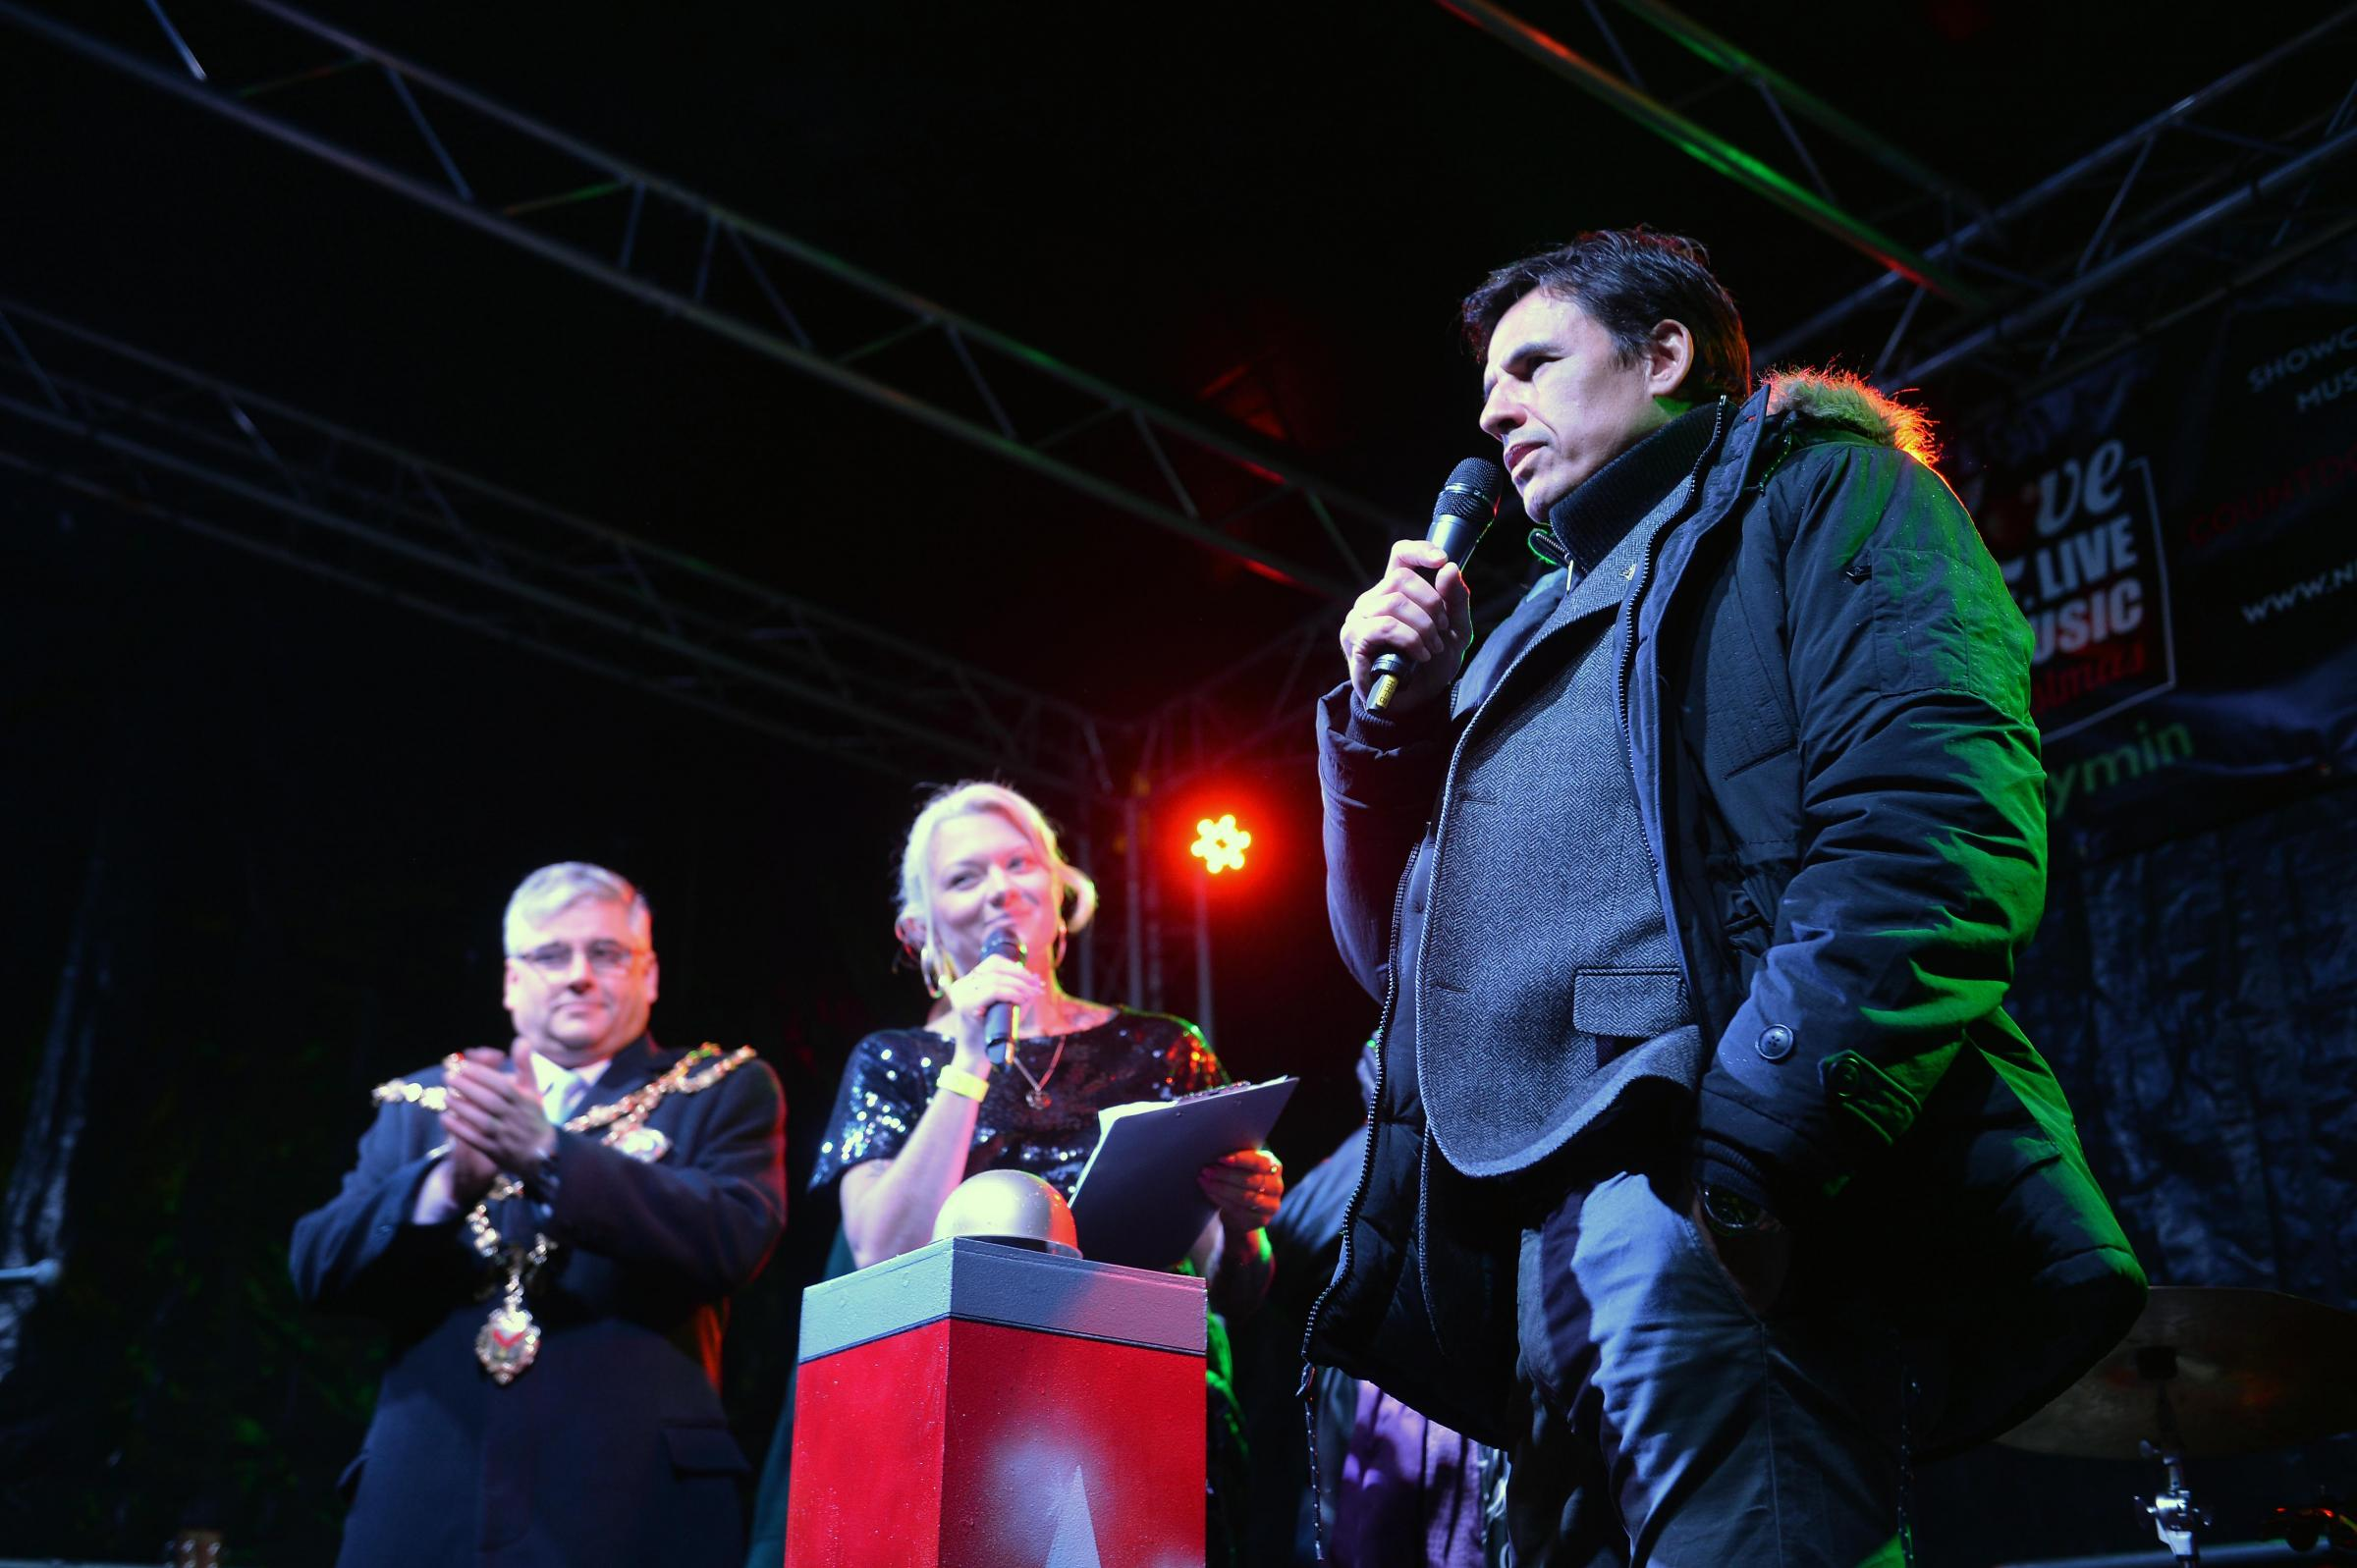 Chris Coleman at the countdown to Christmas lights switch on in Newport.   www.christinsleyphotography.co.uk